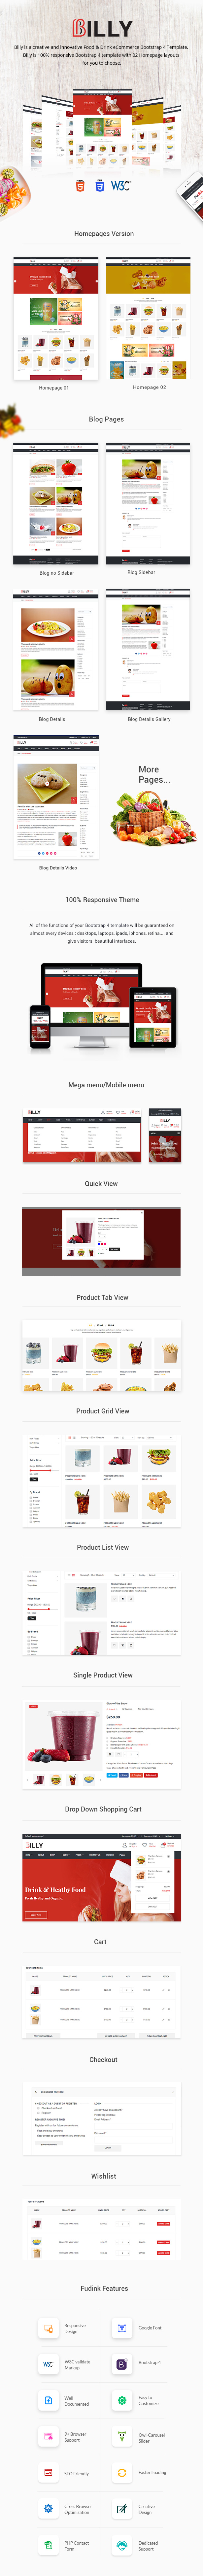 Billy - Food & Drink eCommerce Bootstrap4 Template - 1